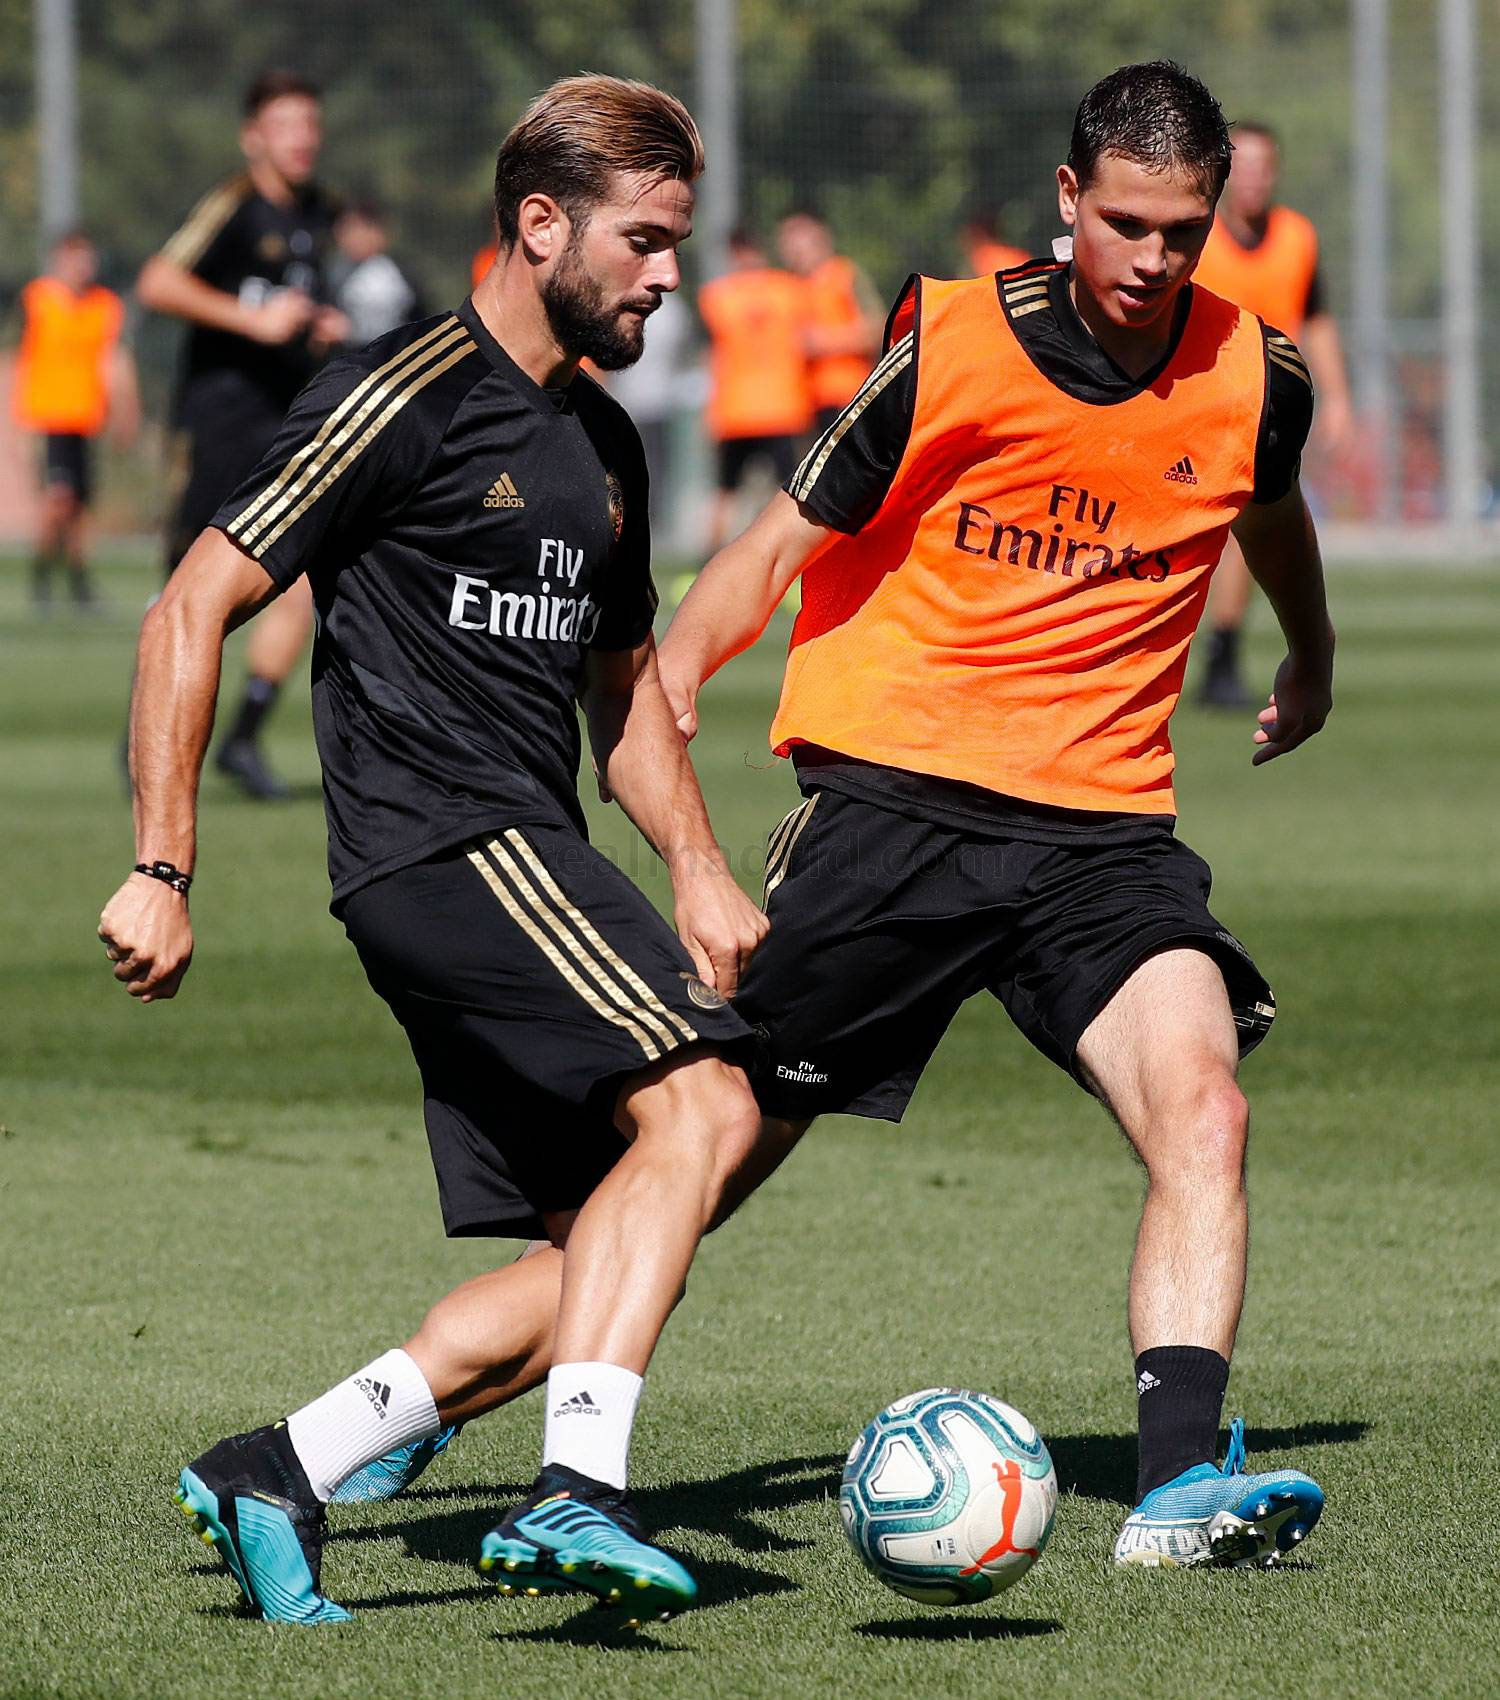 Real Madrid - Entrenamiento del Real Madrid  - 04-09-2019